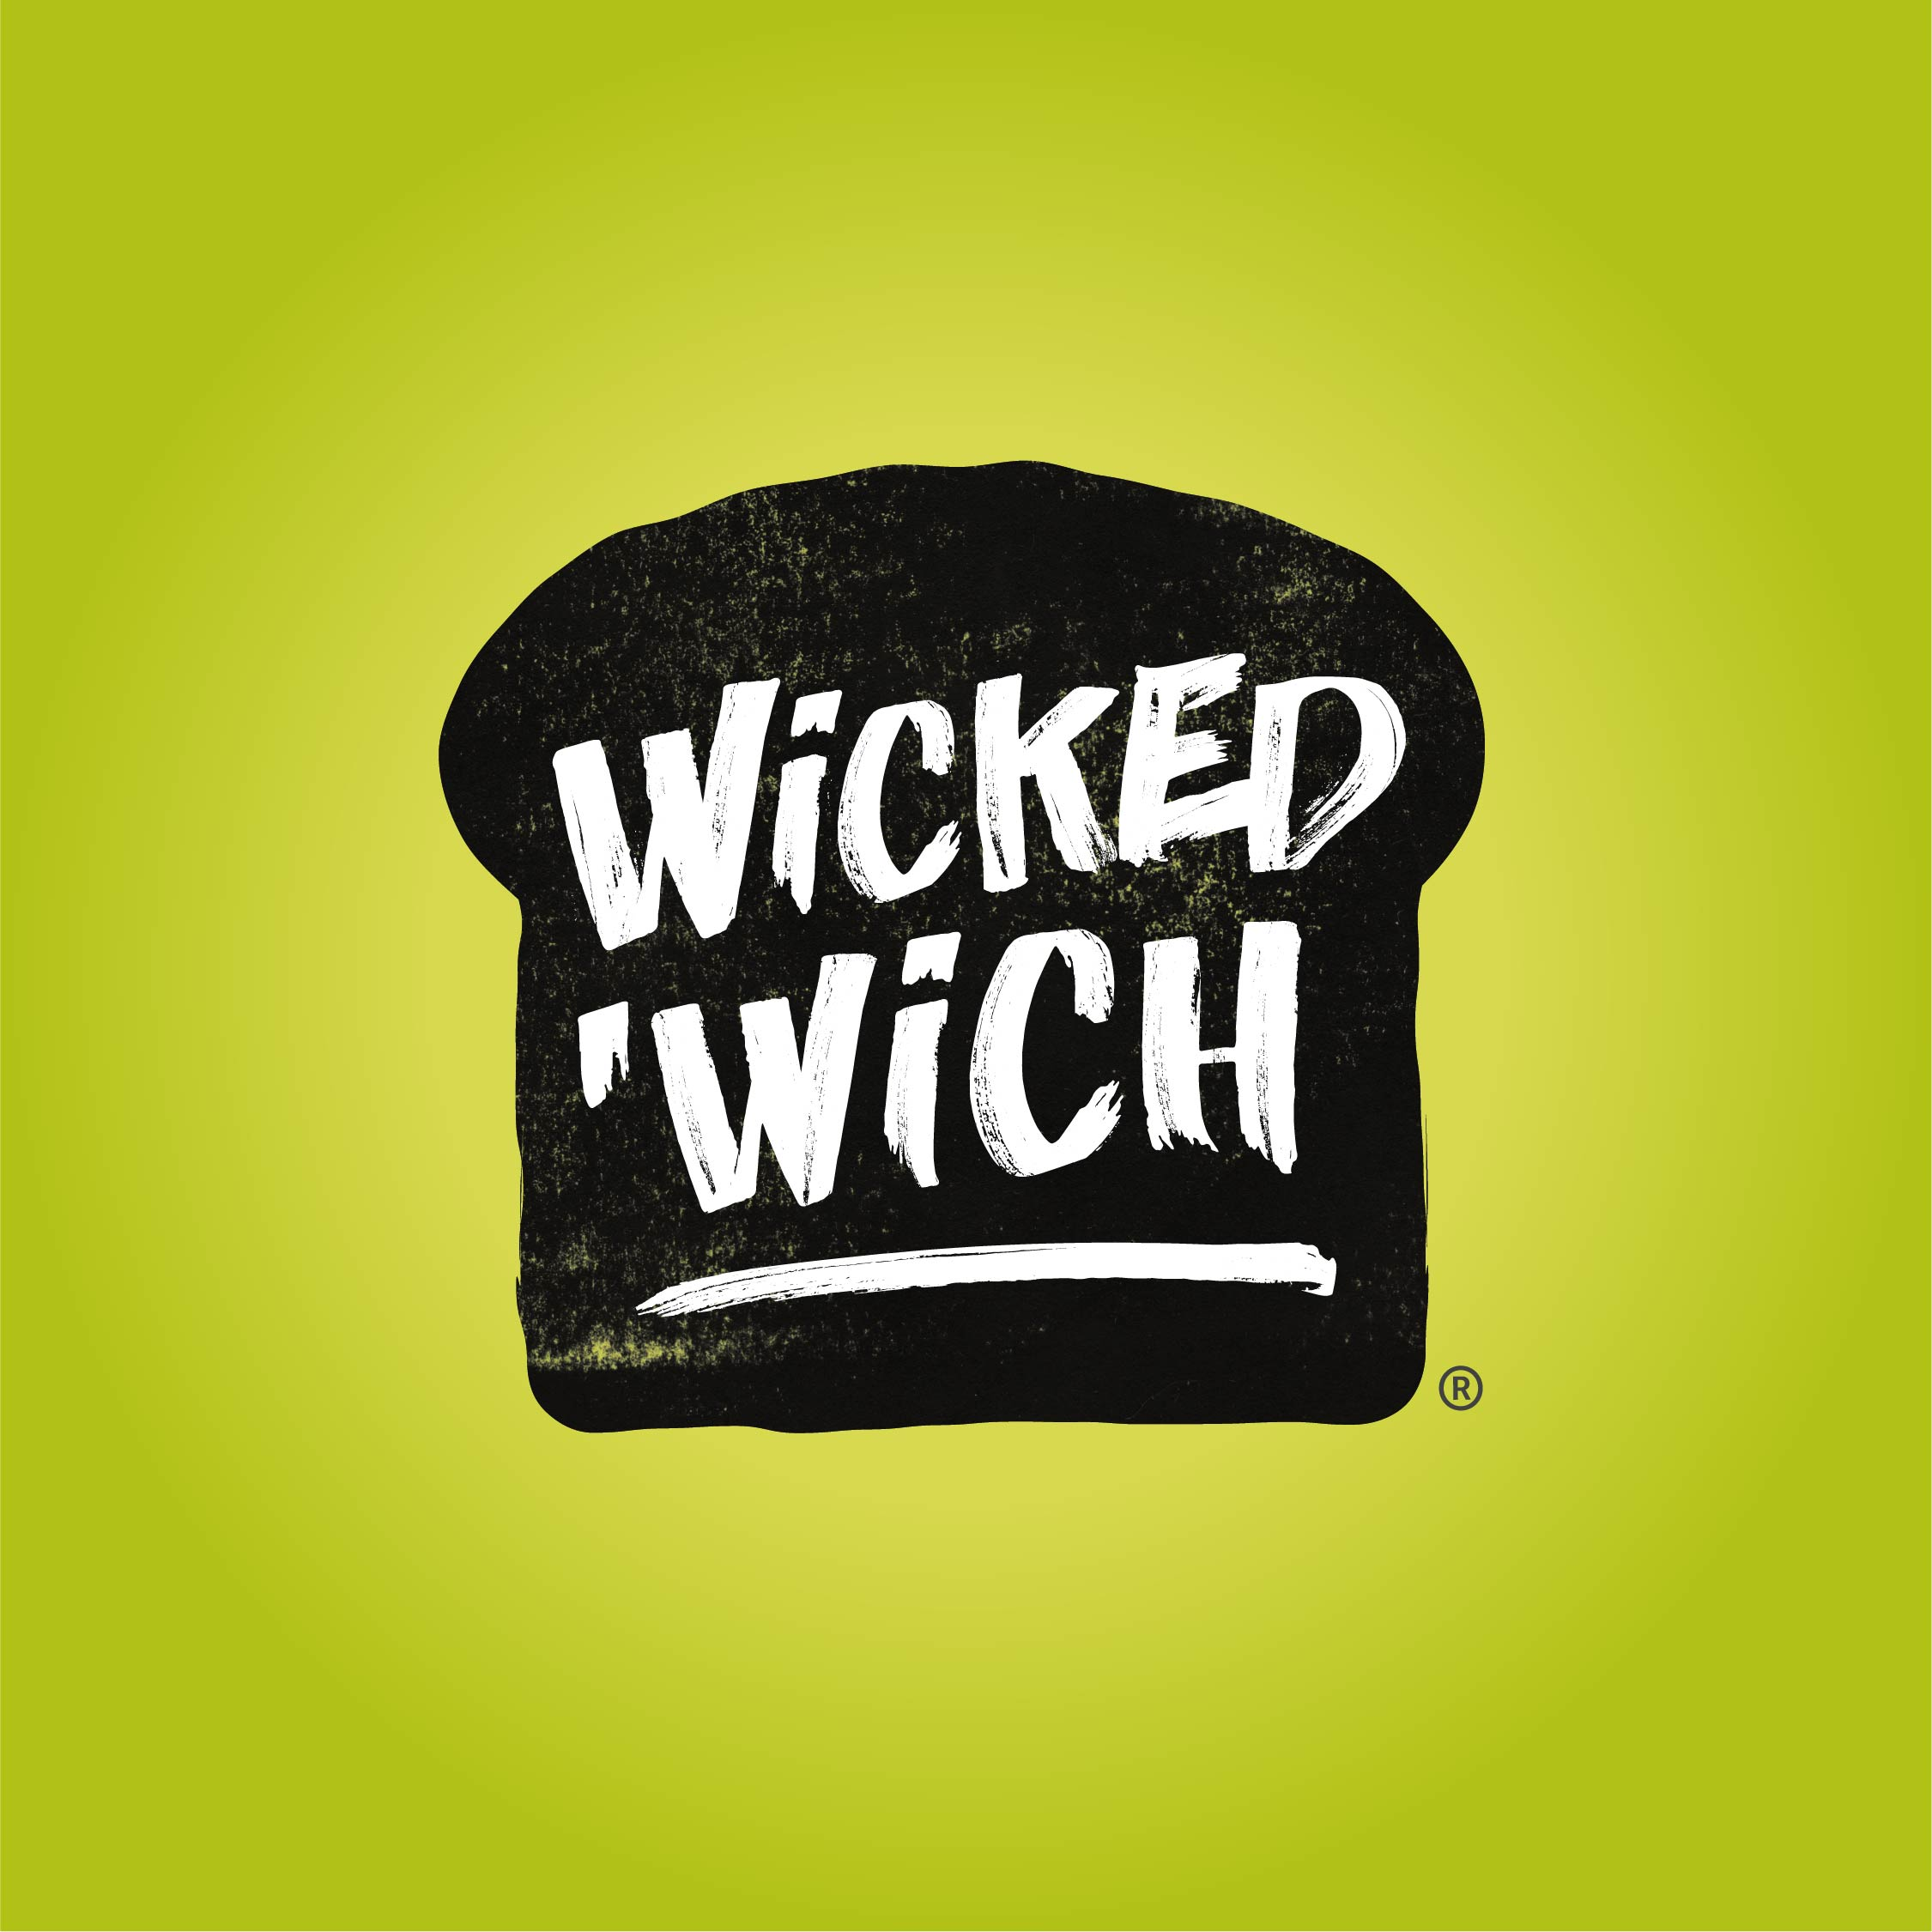 Wicked 'Wick